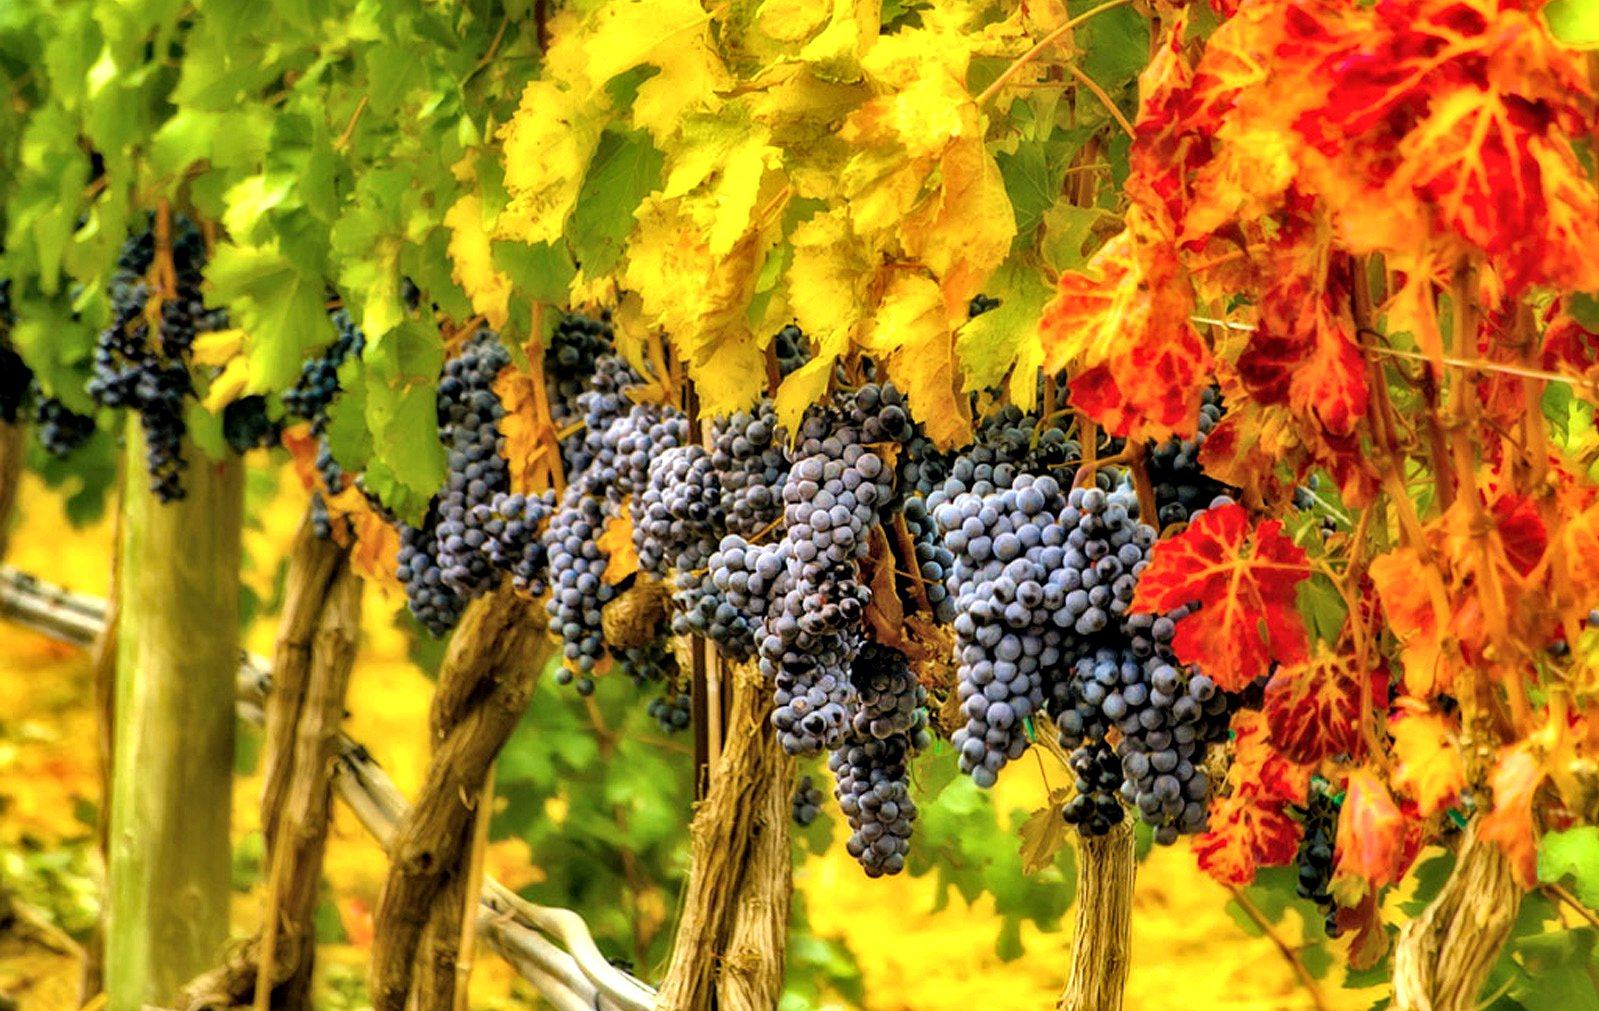 Image of Wine Vine with Ripe Grapes in Fall